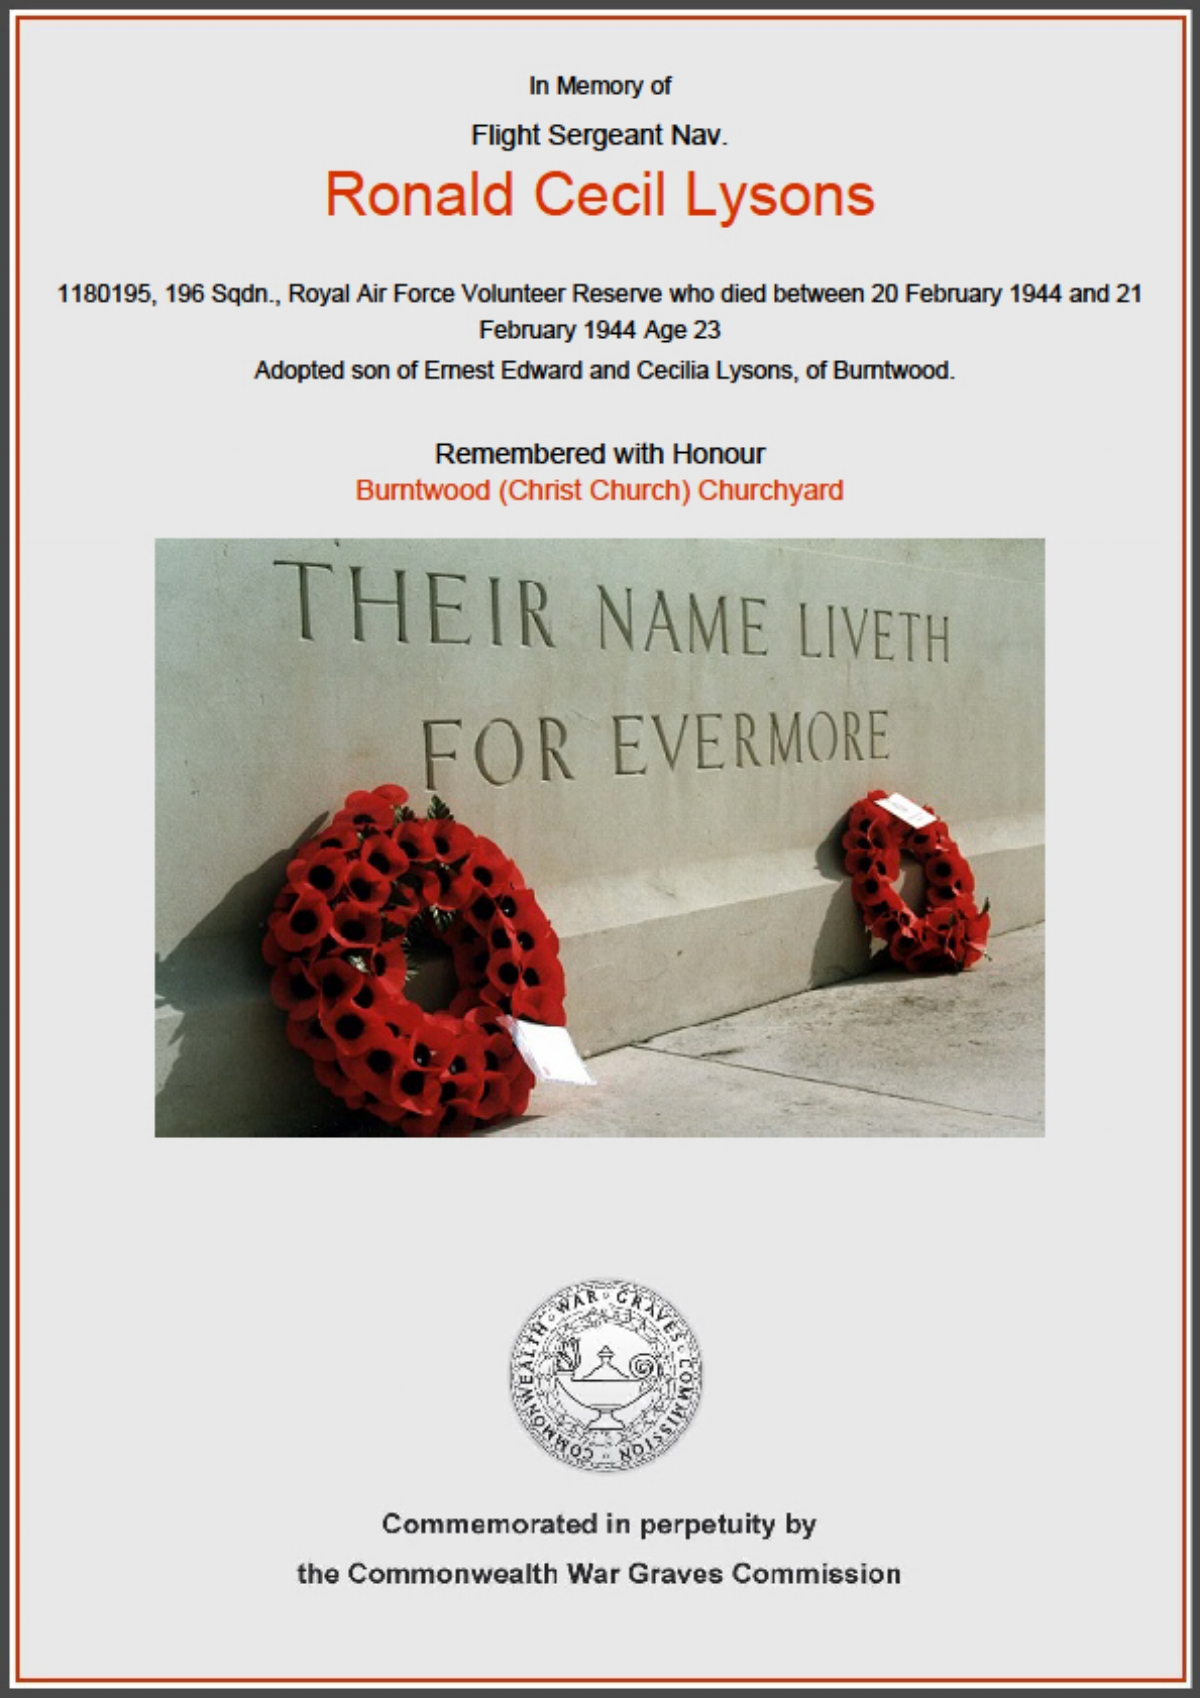 Commonwealth War Graves Commission Certificate in memory of Flight Sergeant Ronald Cecil Lysons